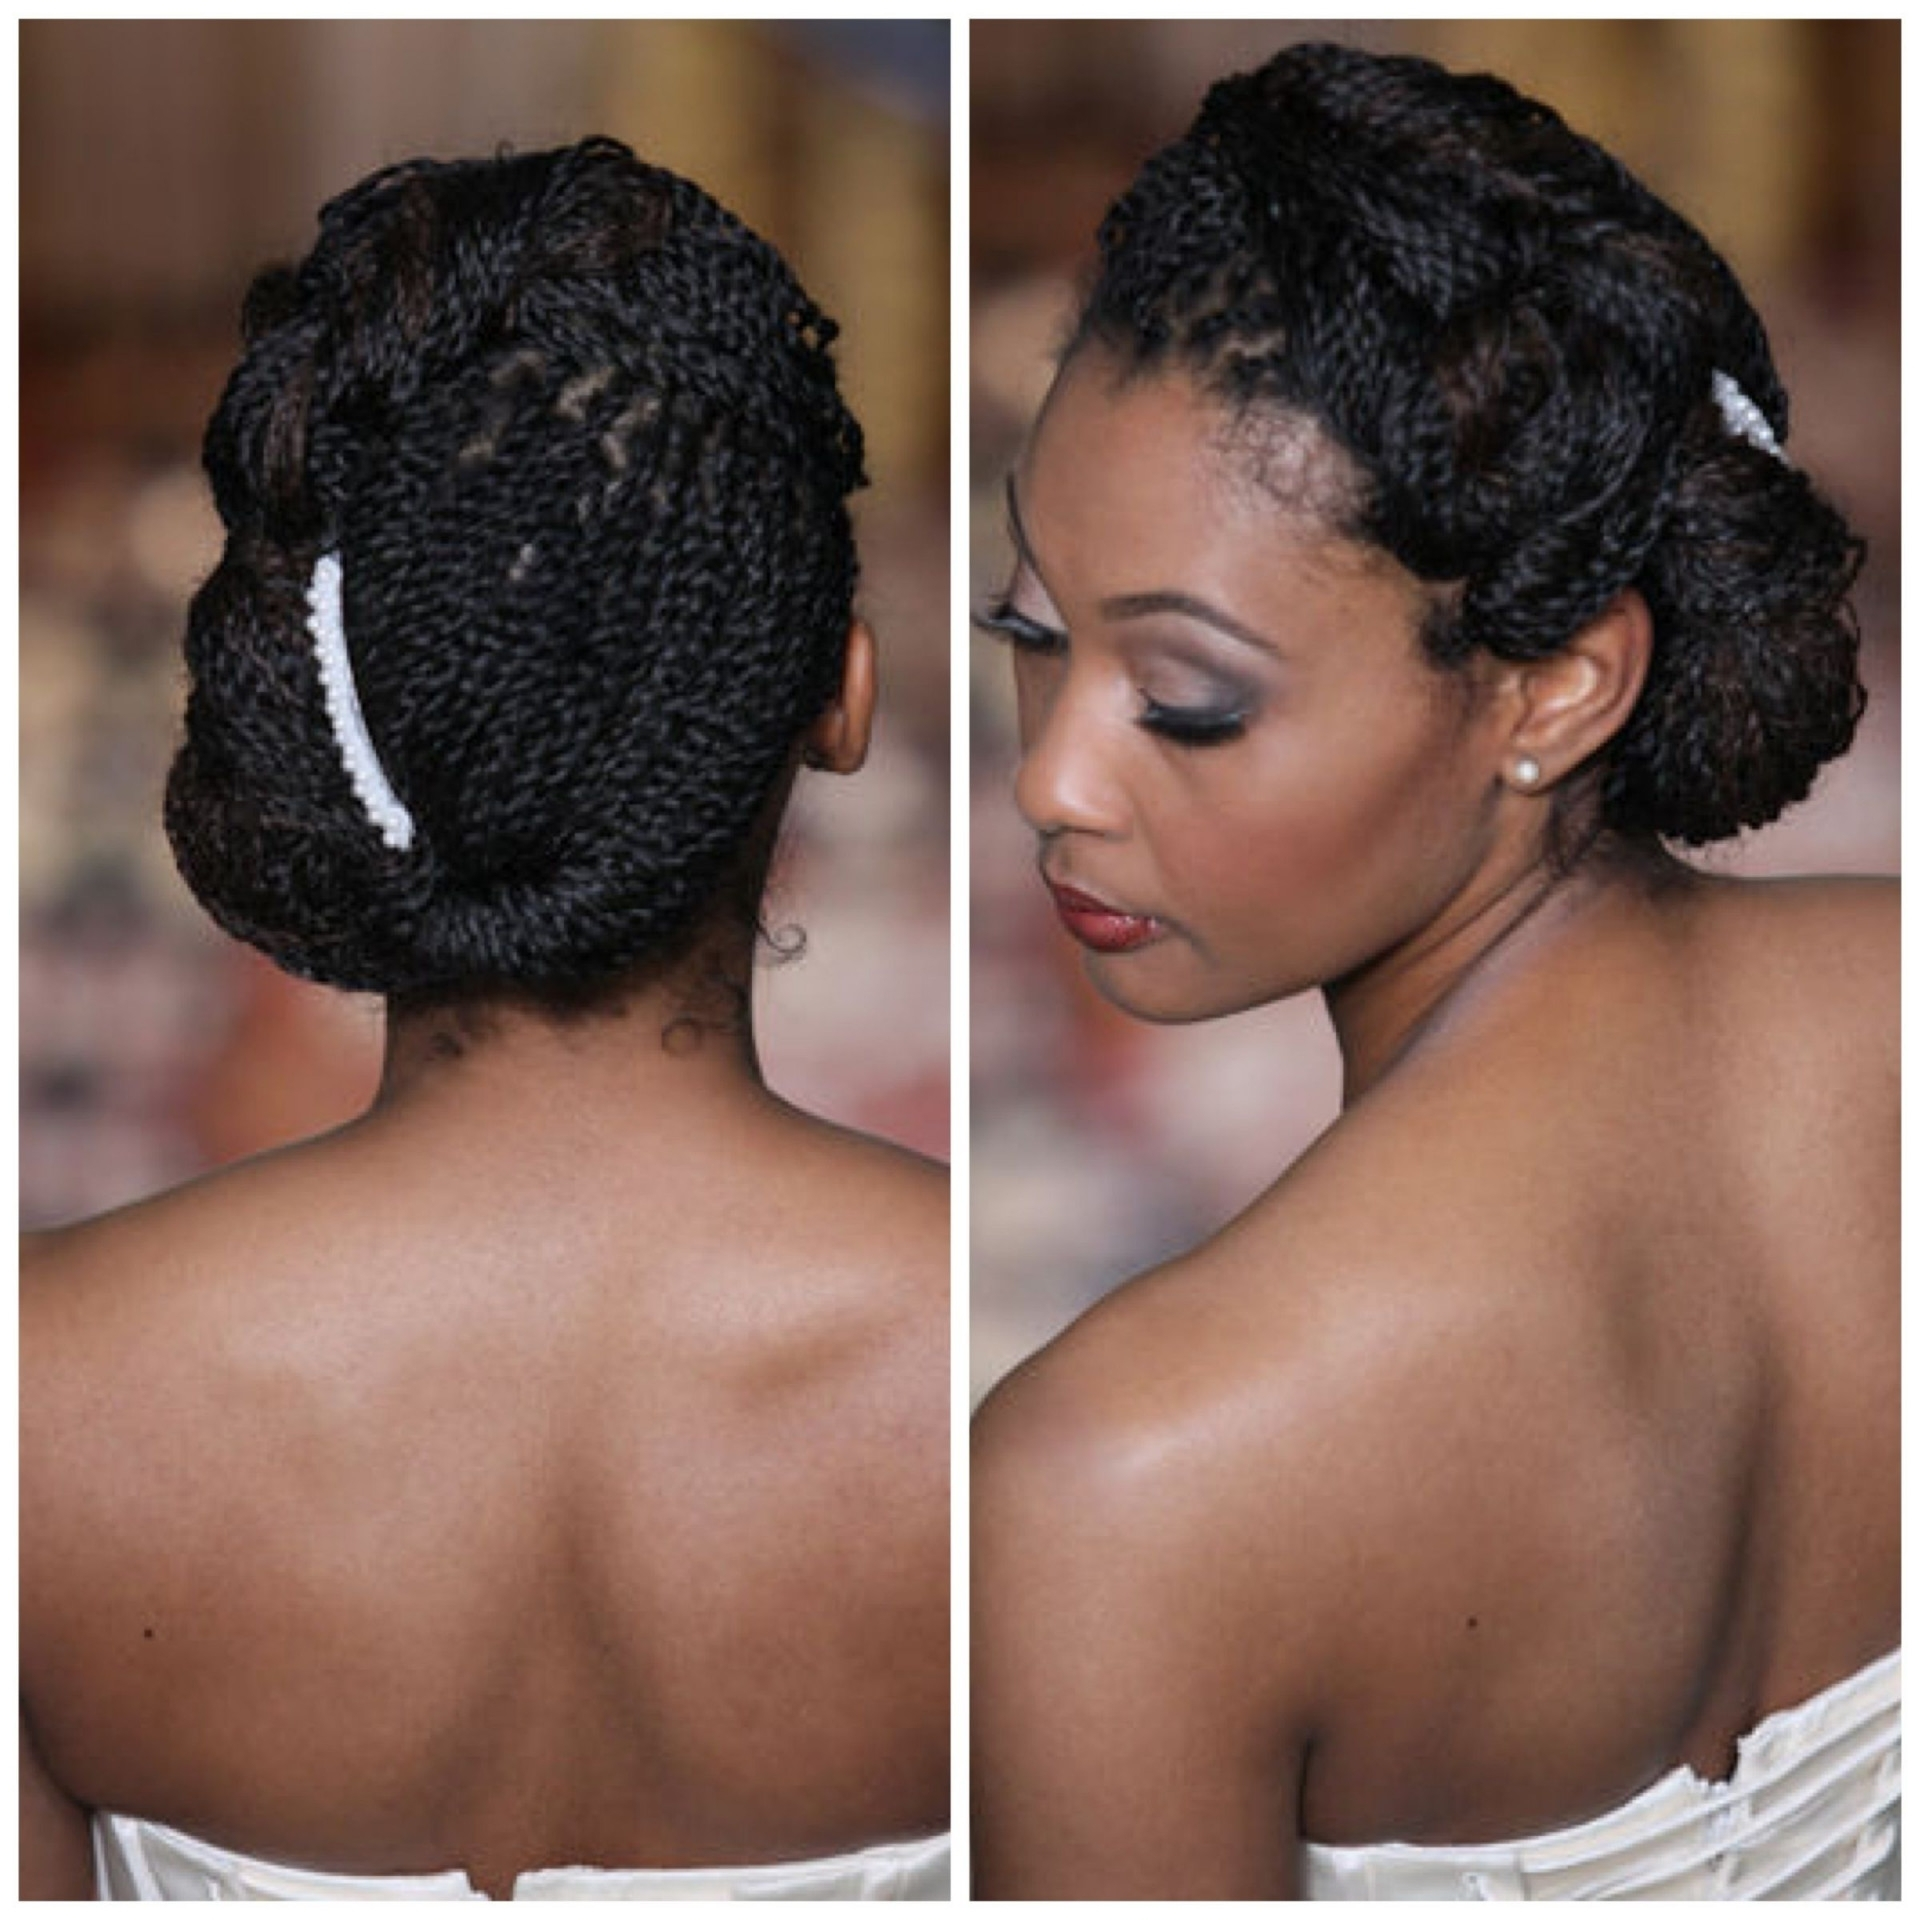 Latest Wedding Hairstyles For African American Bridesmaids Within Wedding Hairstyles For African American Bridesmaids With Short (View 11 of 15)